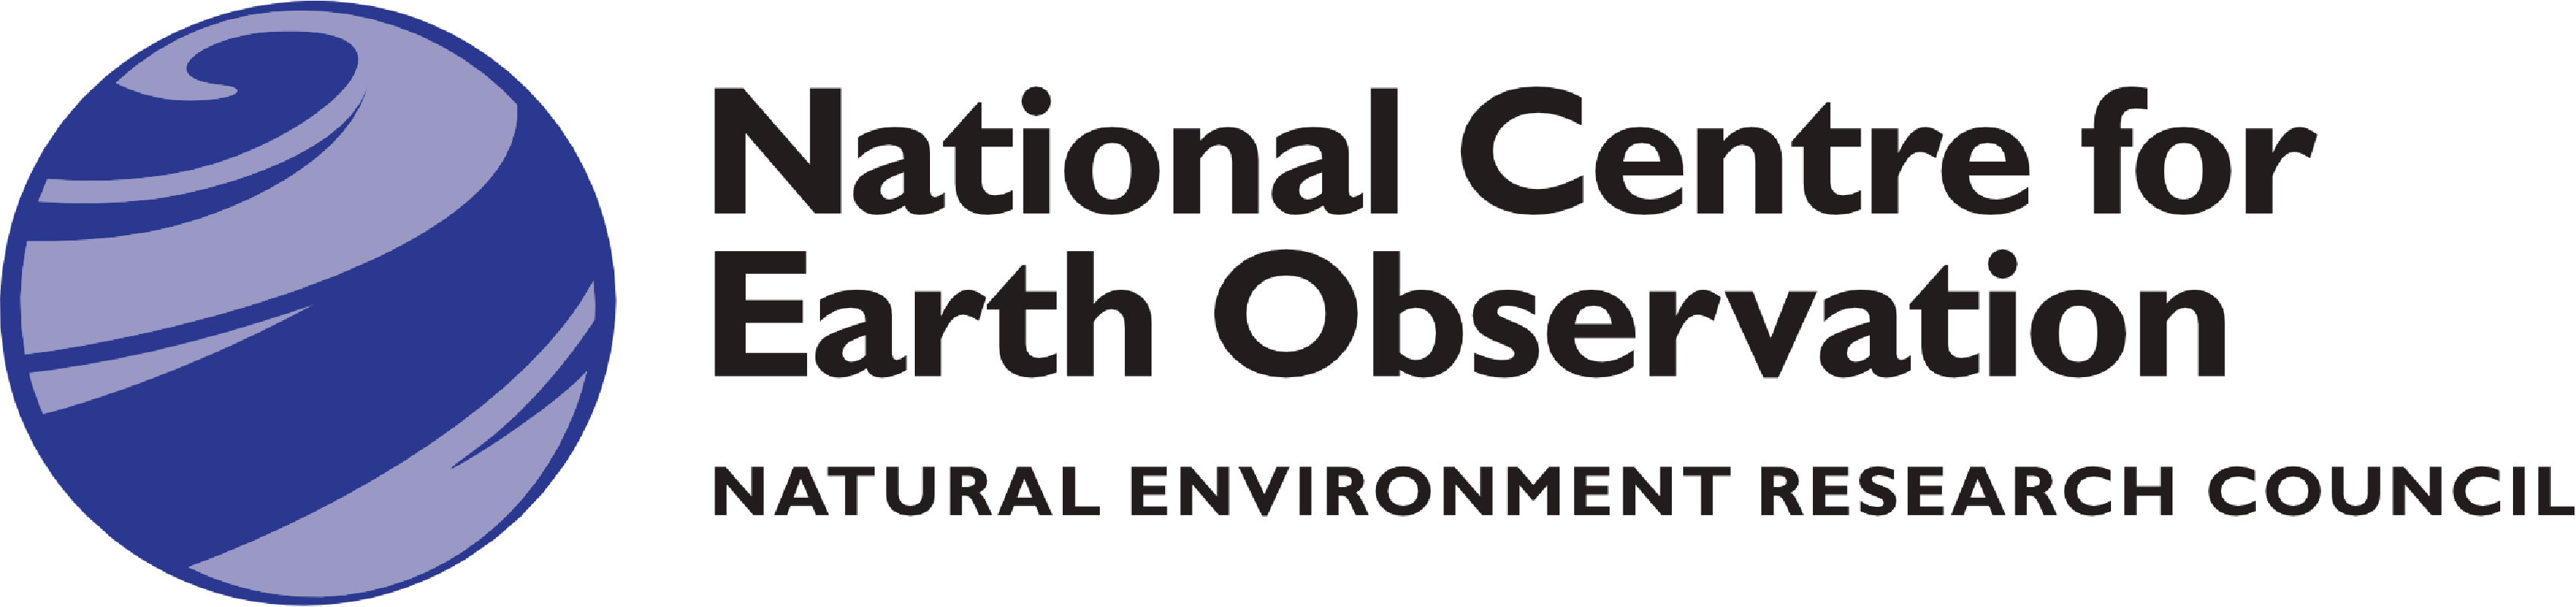 National Centre for Earth Observation